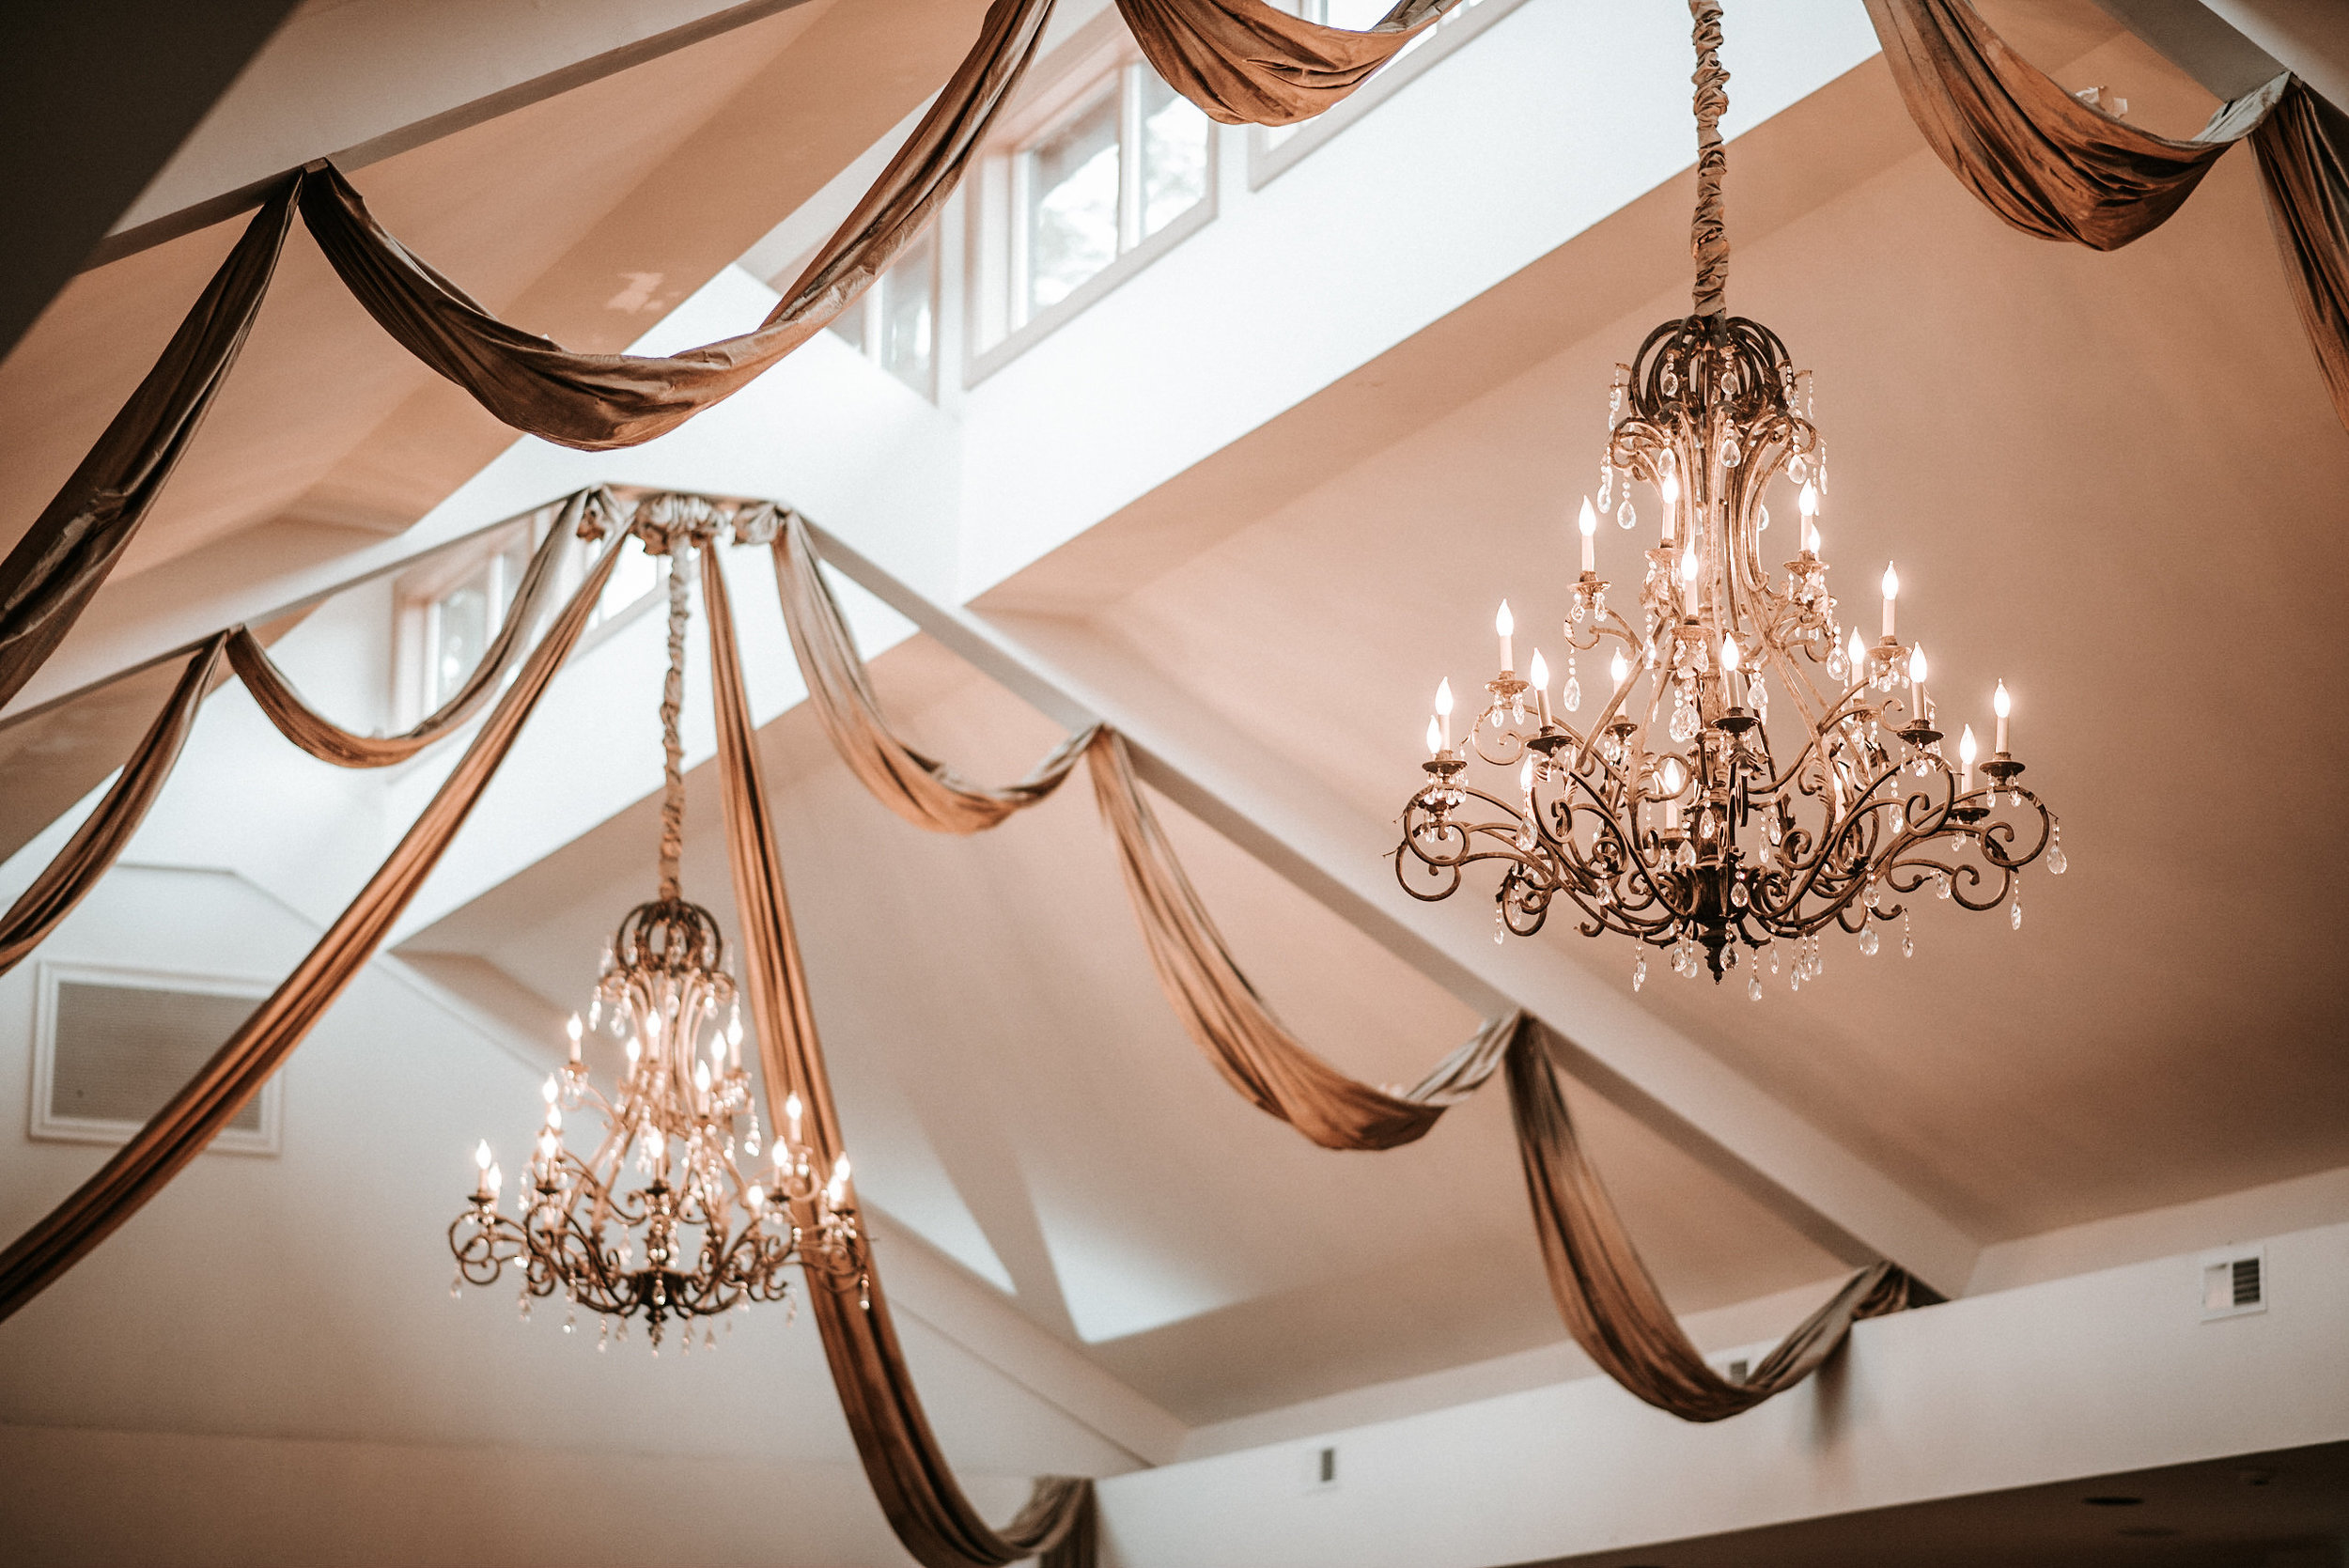 Chandeliers in ceremony space